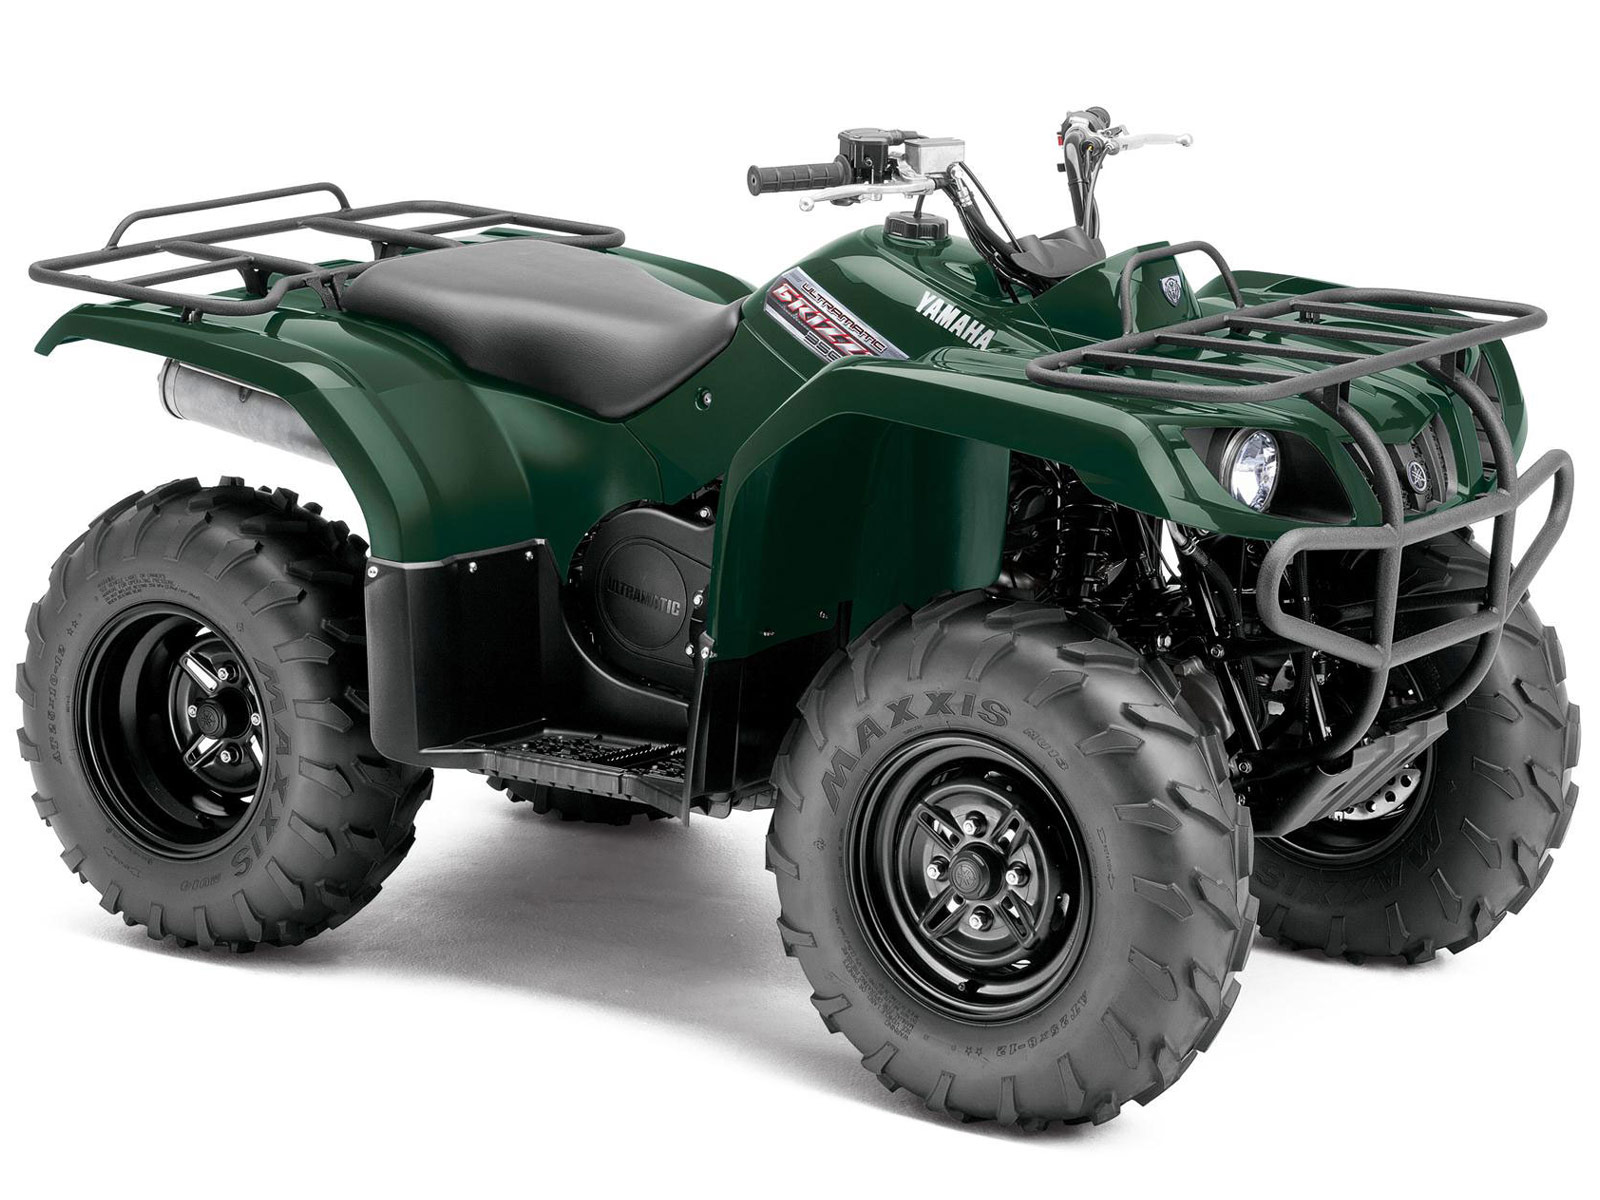 2013 yamaha grizzly 350 auto 4x4 atv pictures for Yamaha grizzly atv